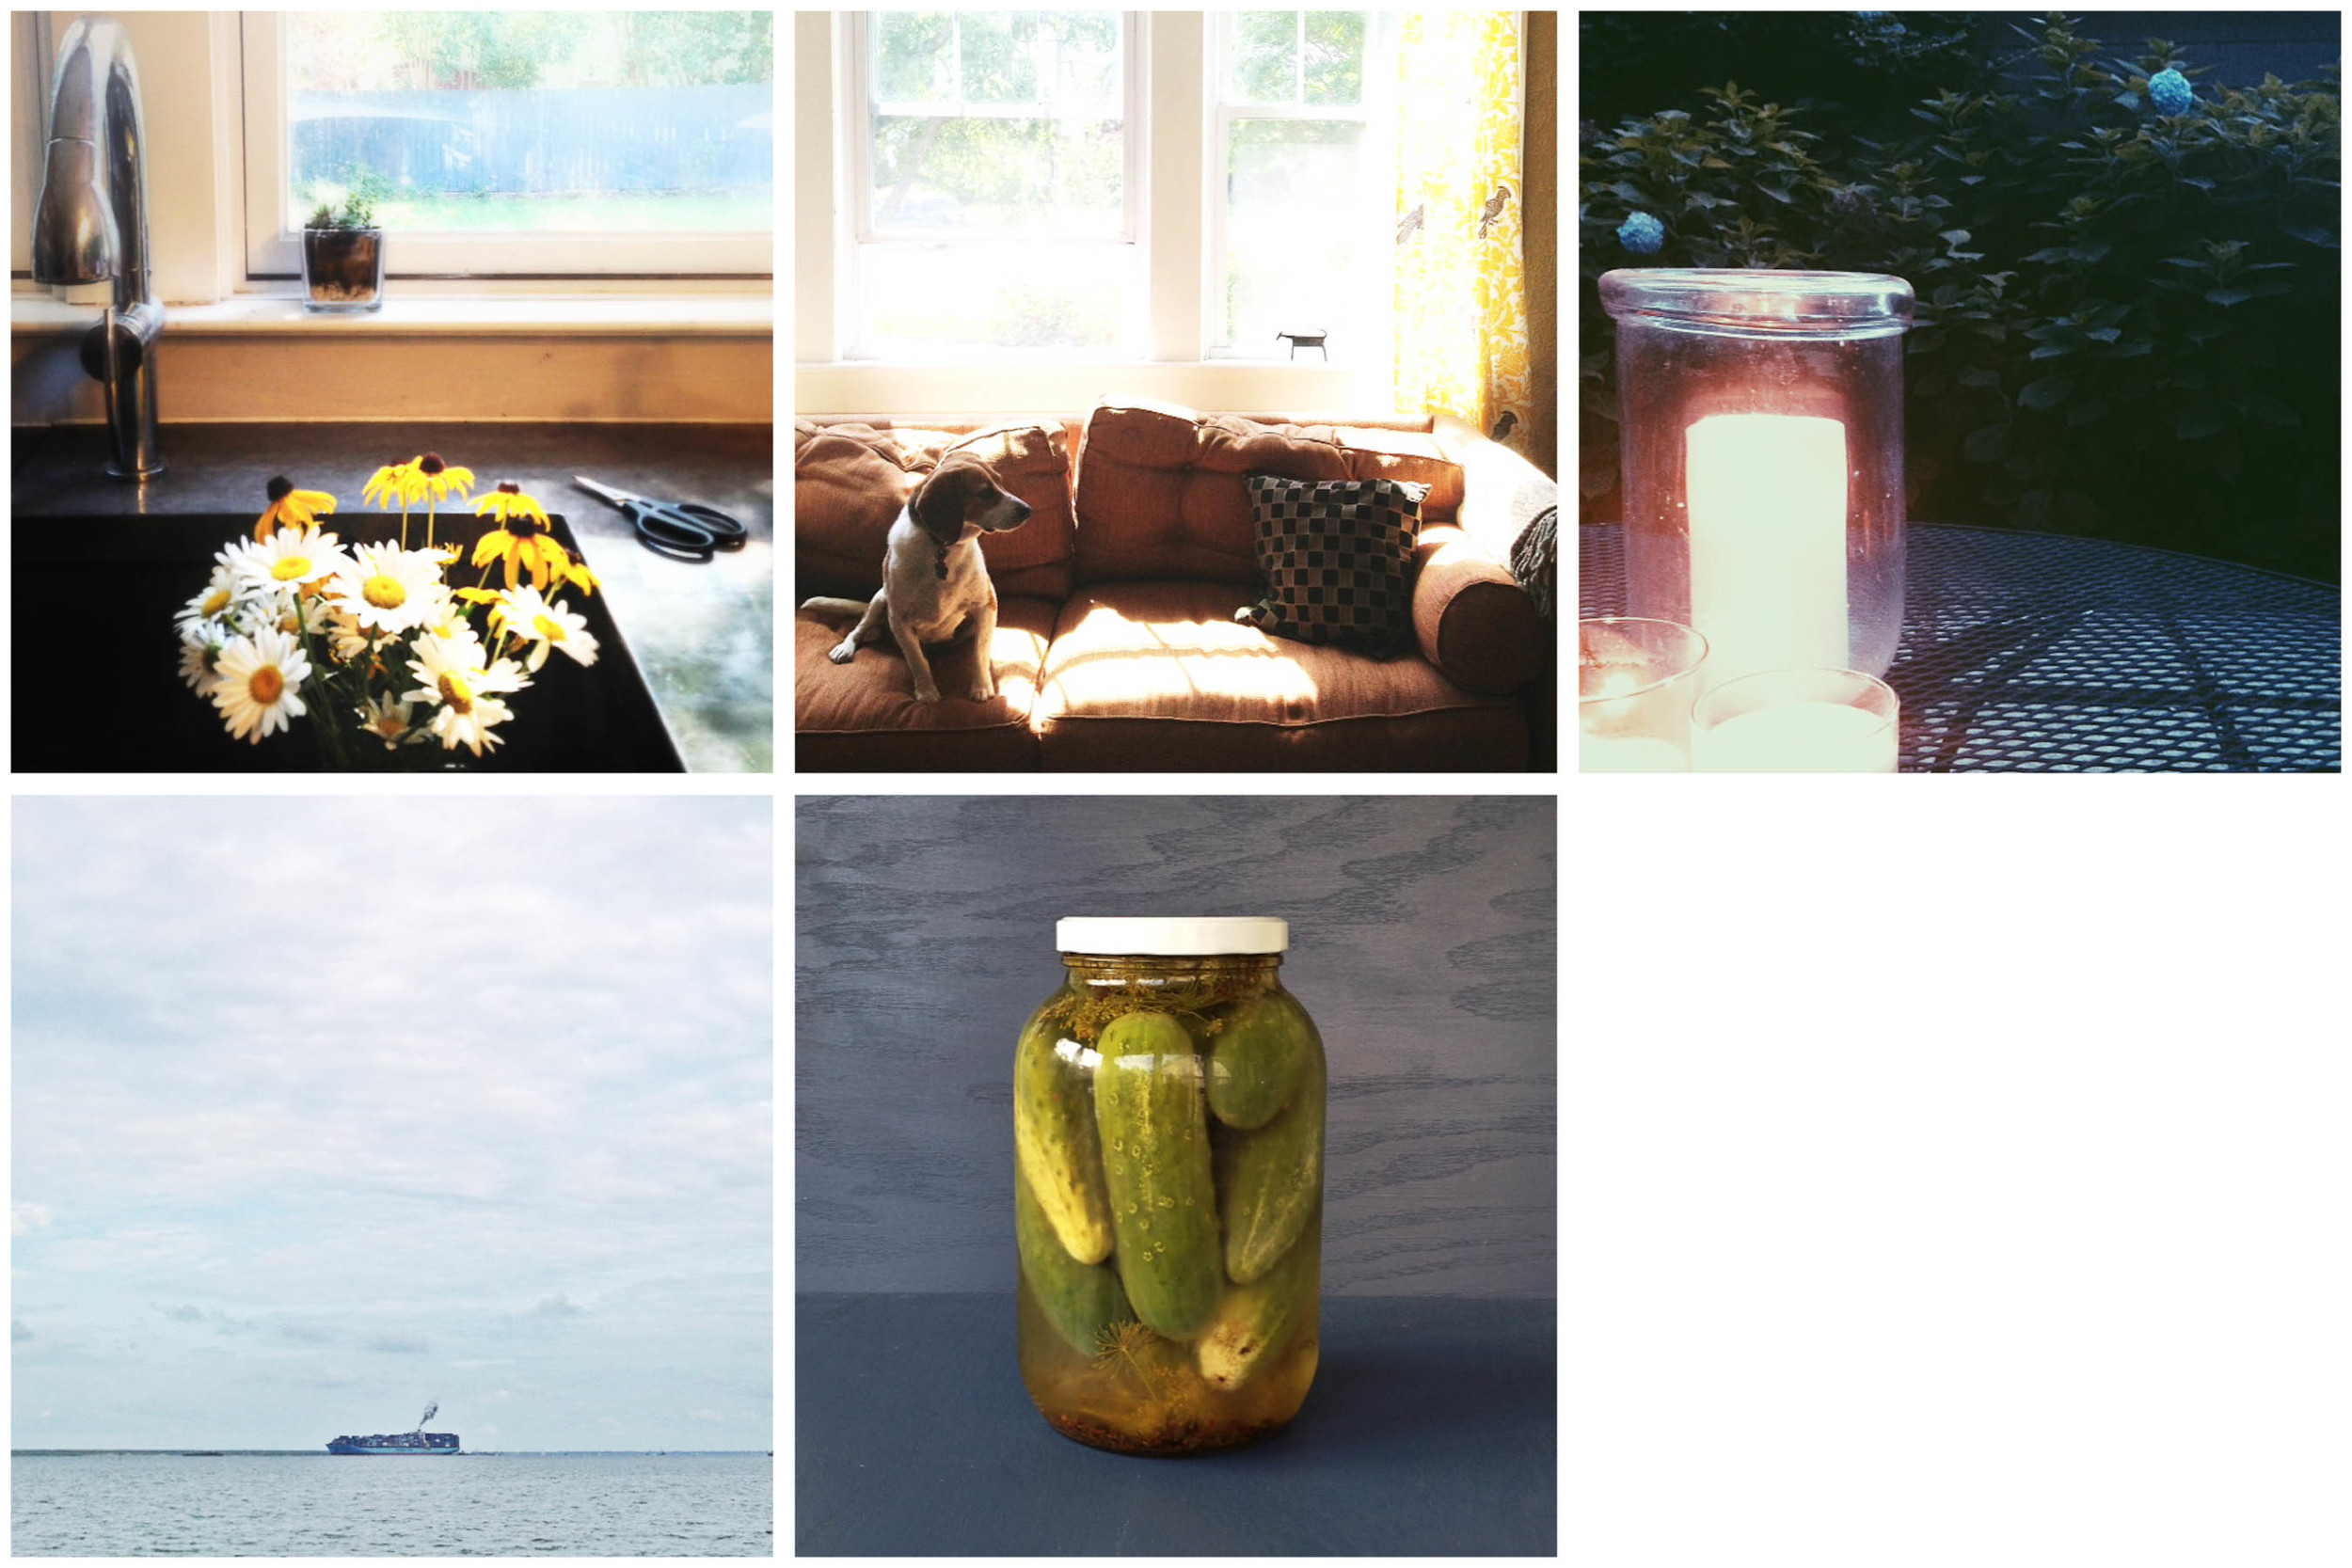 Row 1: Neel's garden comes inside | Lucy sneaks a snuggle in the sofa | Twilight time | Row 2. Traffic on the river | Neighborhood bounty